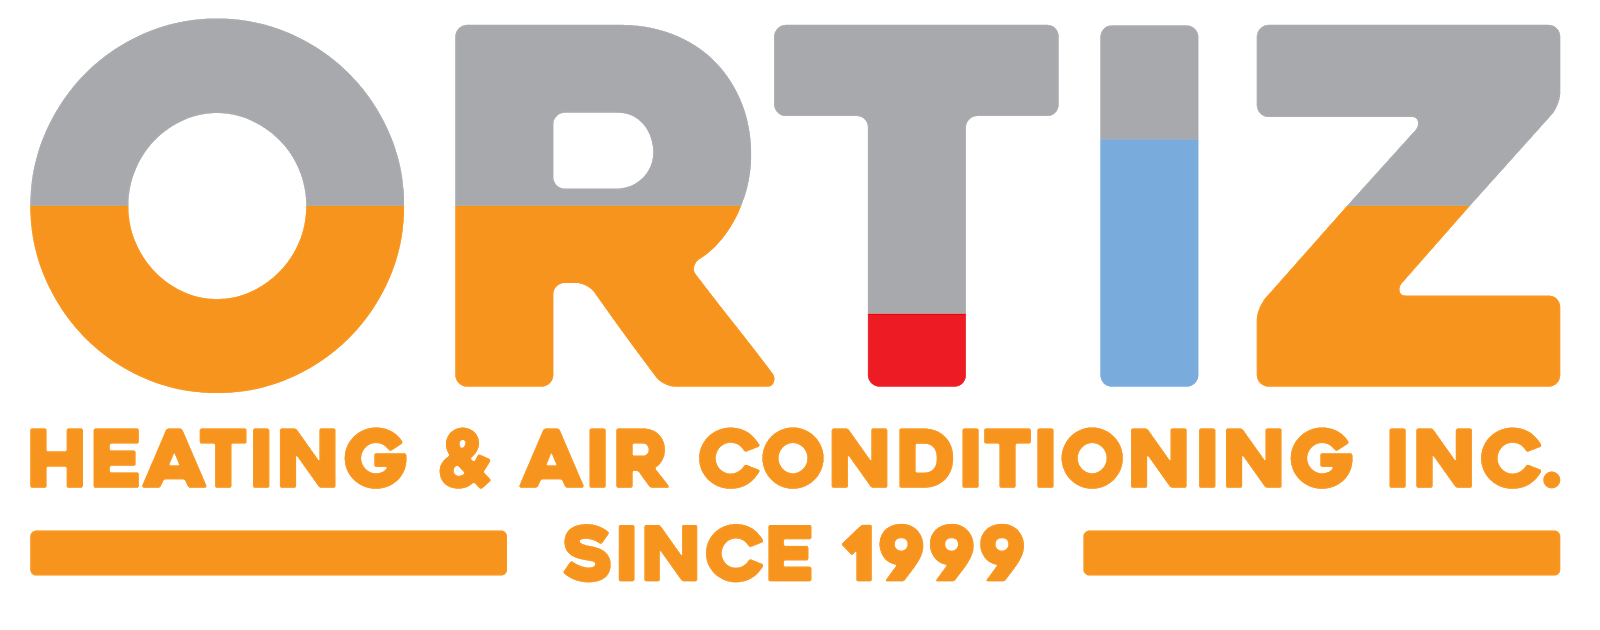 Ortiz Heating & Air Conditioning Inc.